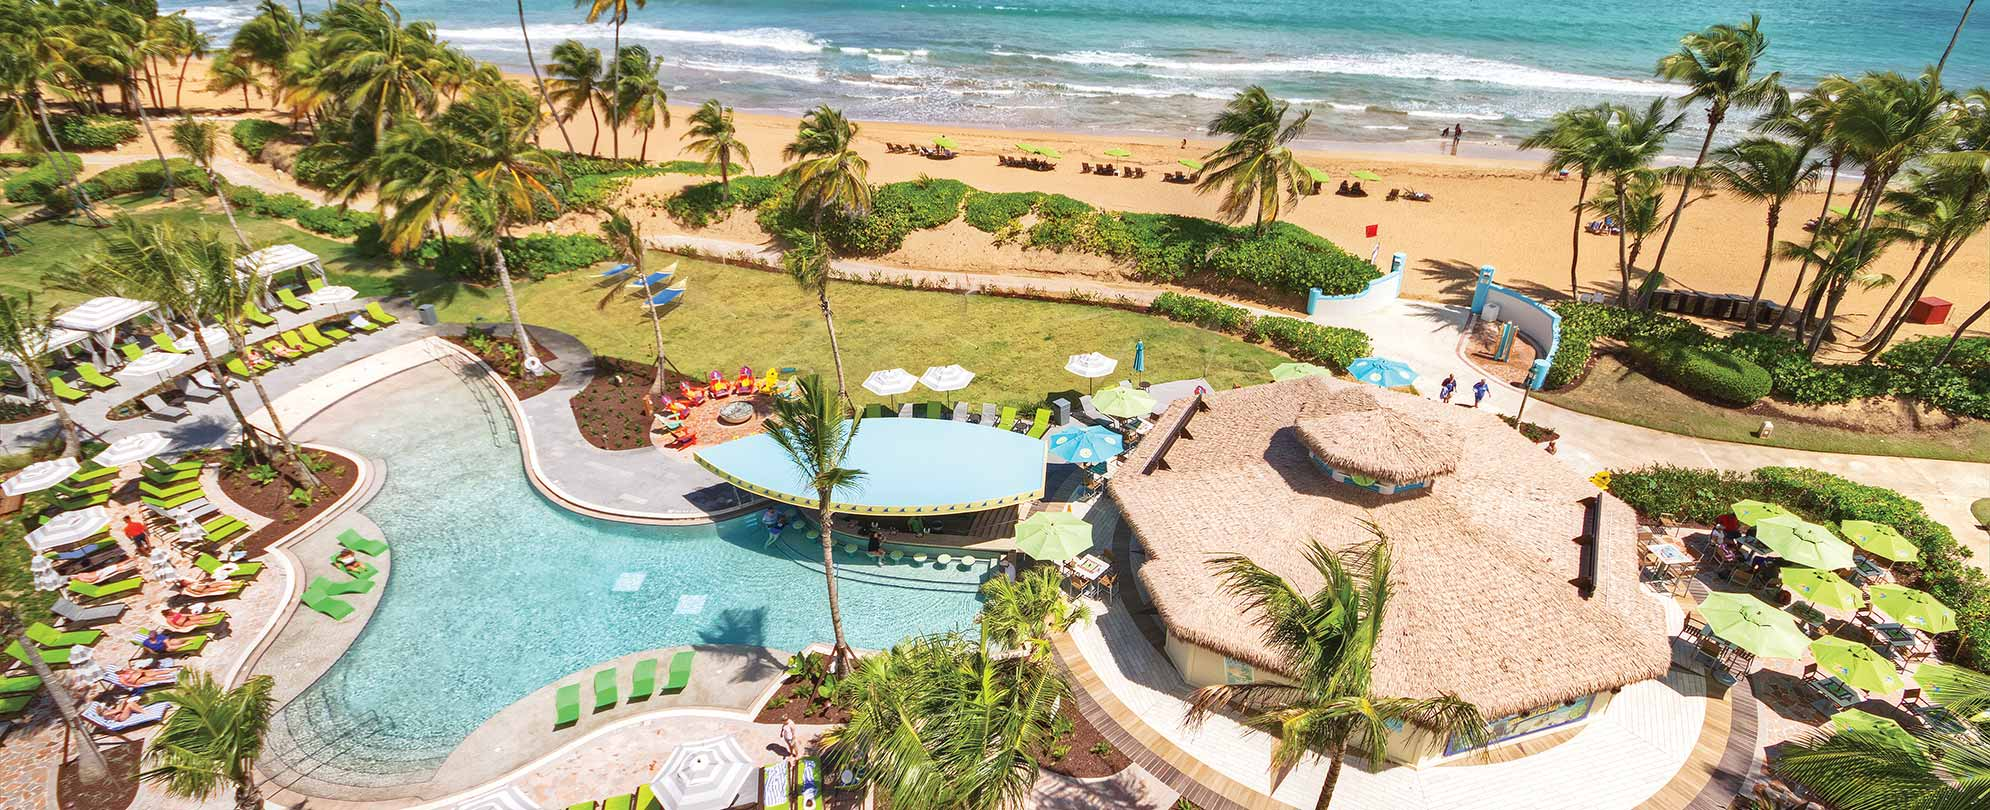 Birds-eye-view of the ocean and pool, with a boat-shaped swim-up bar, at Margaritaville Vacation Club by Wyndham - Rio Mar.